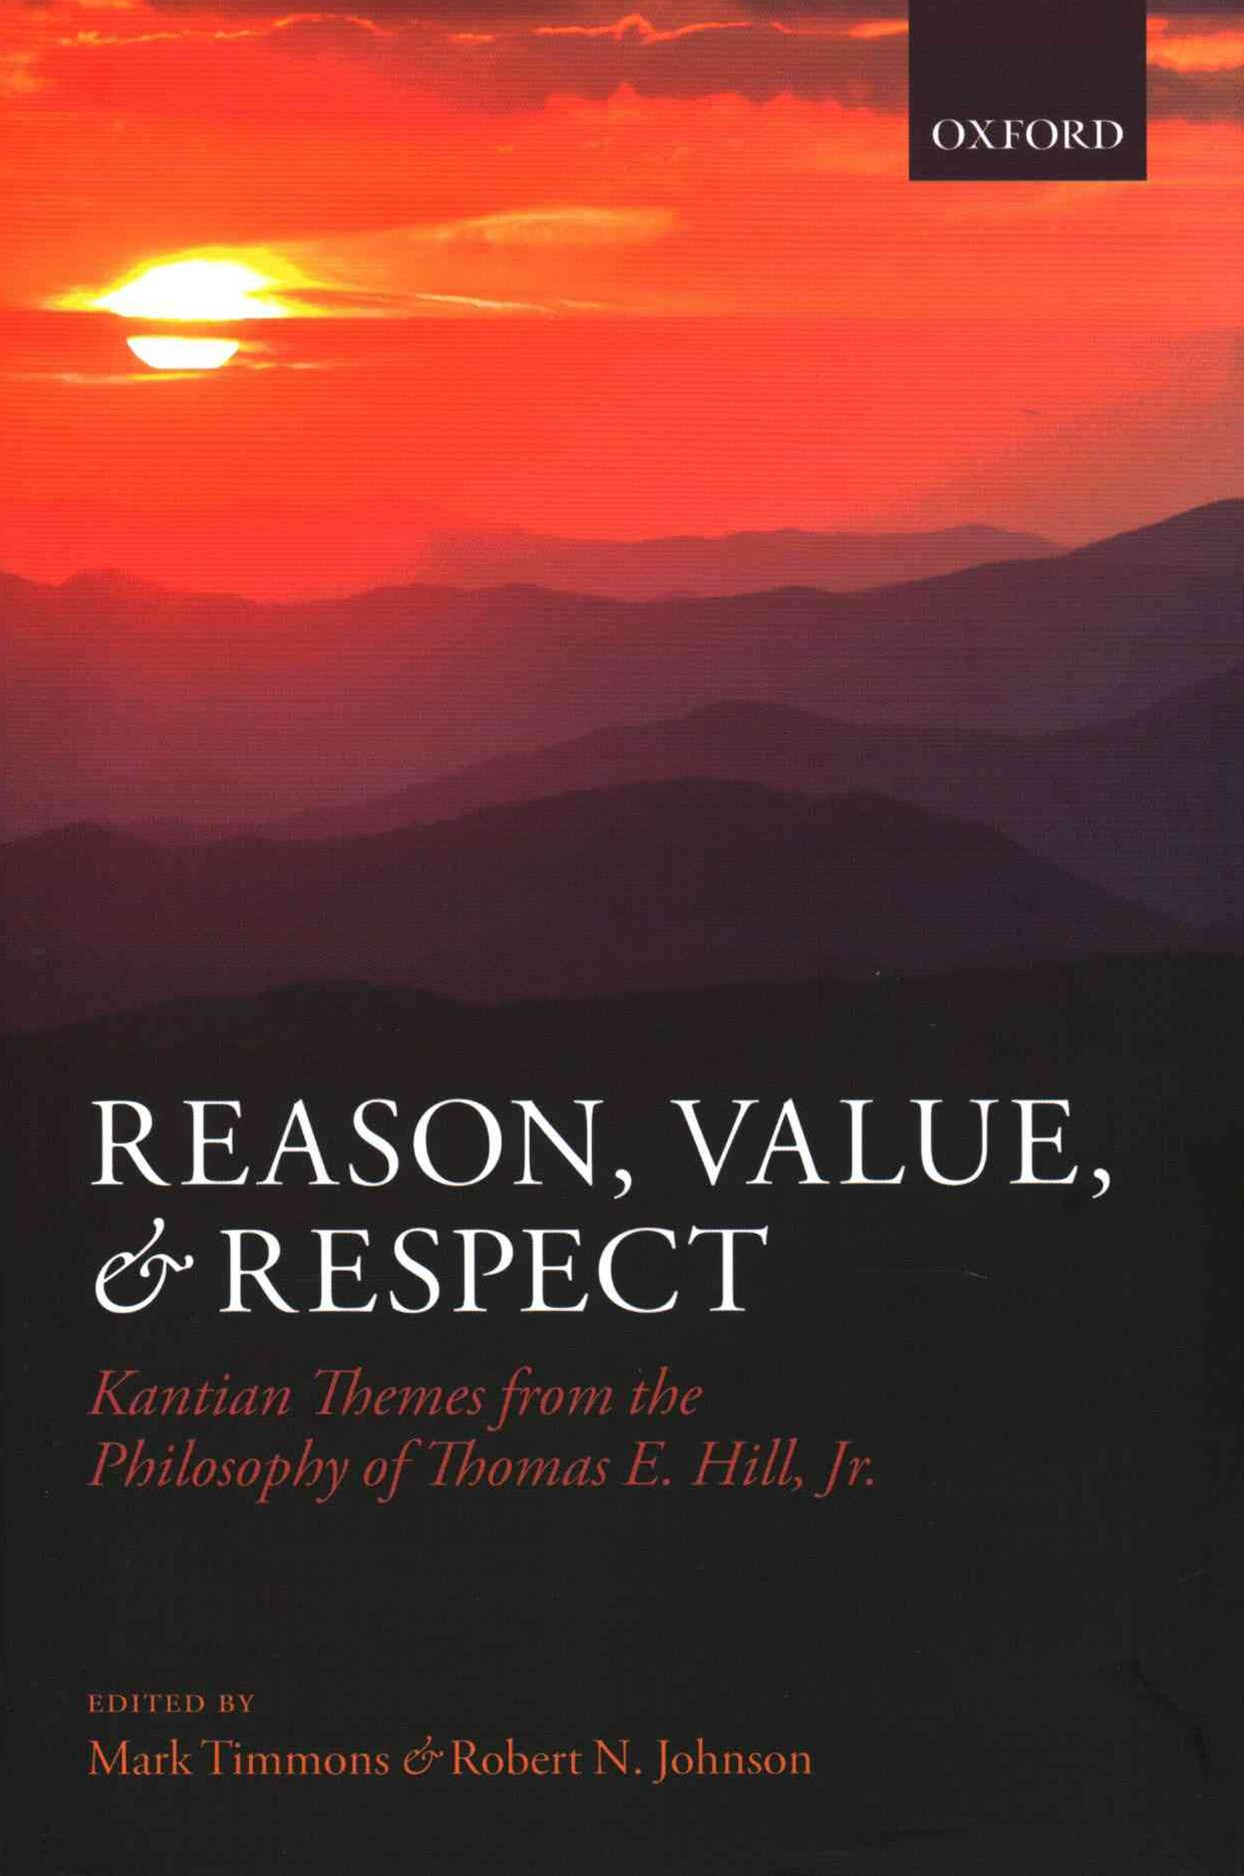 Reason, Value, and Respect